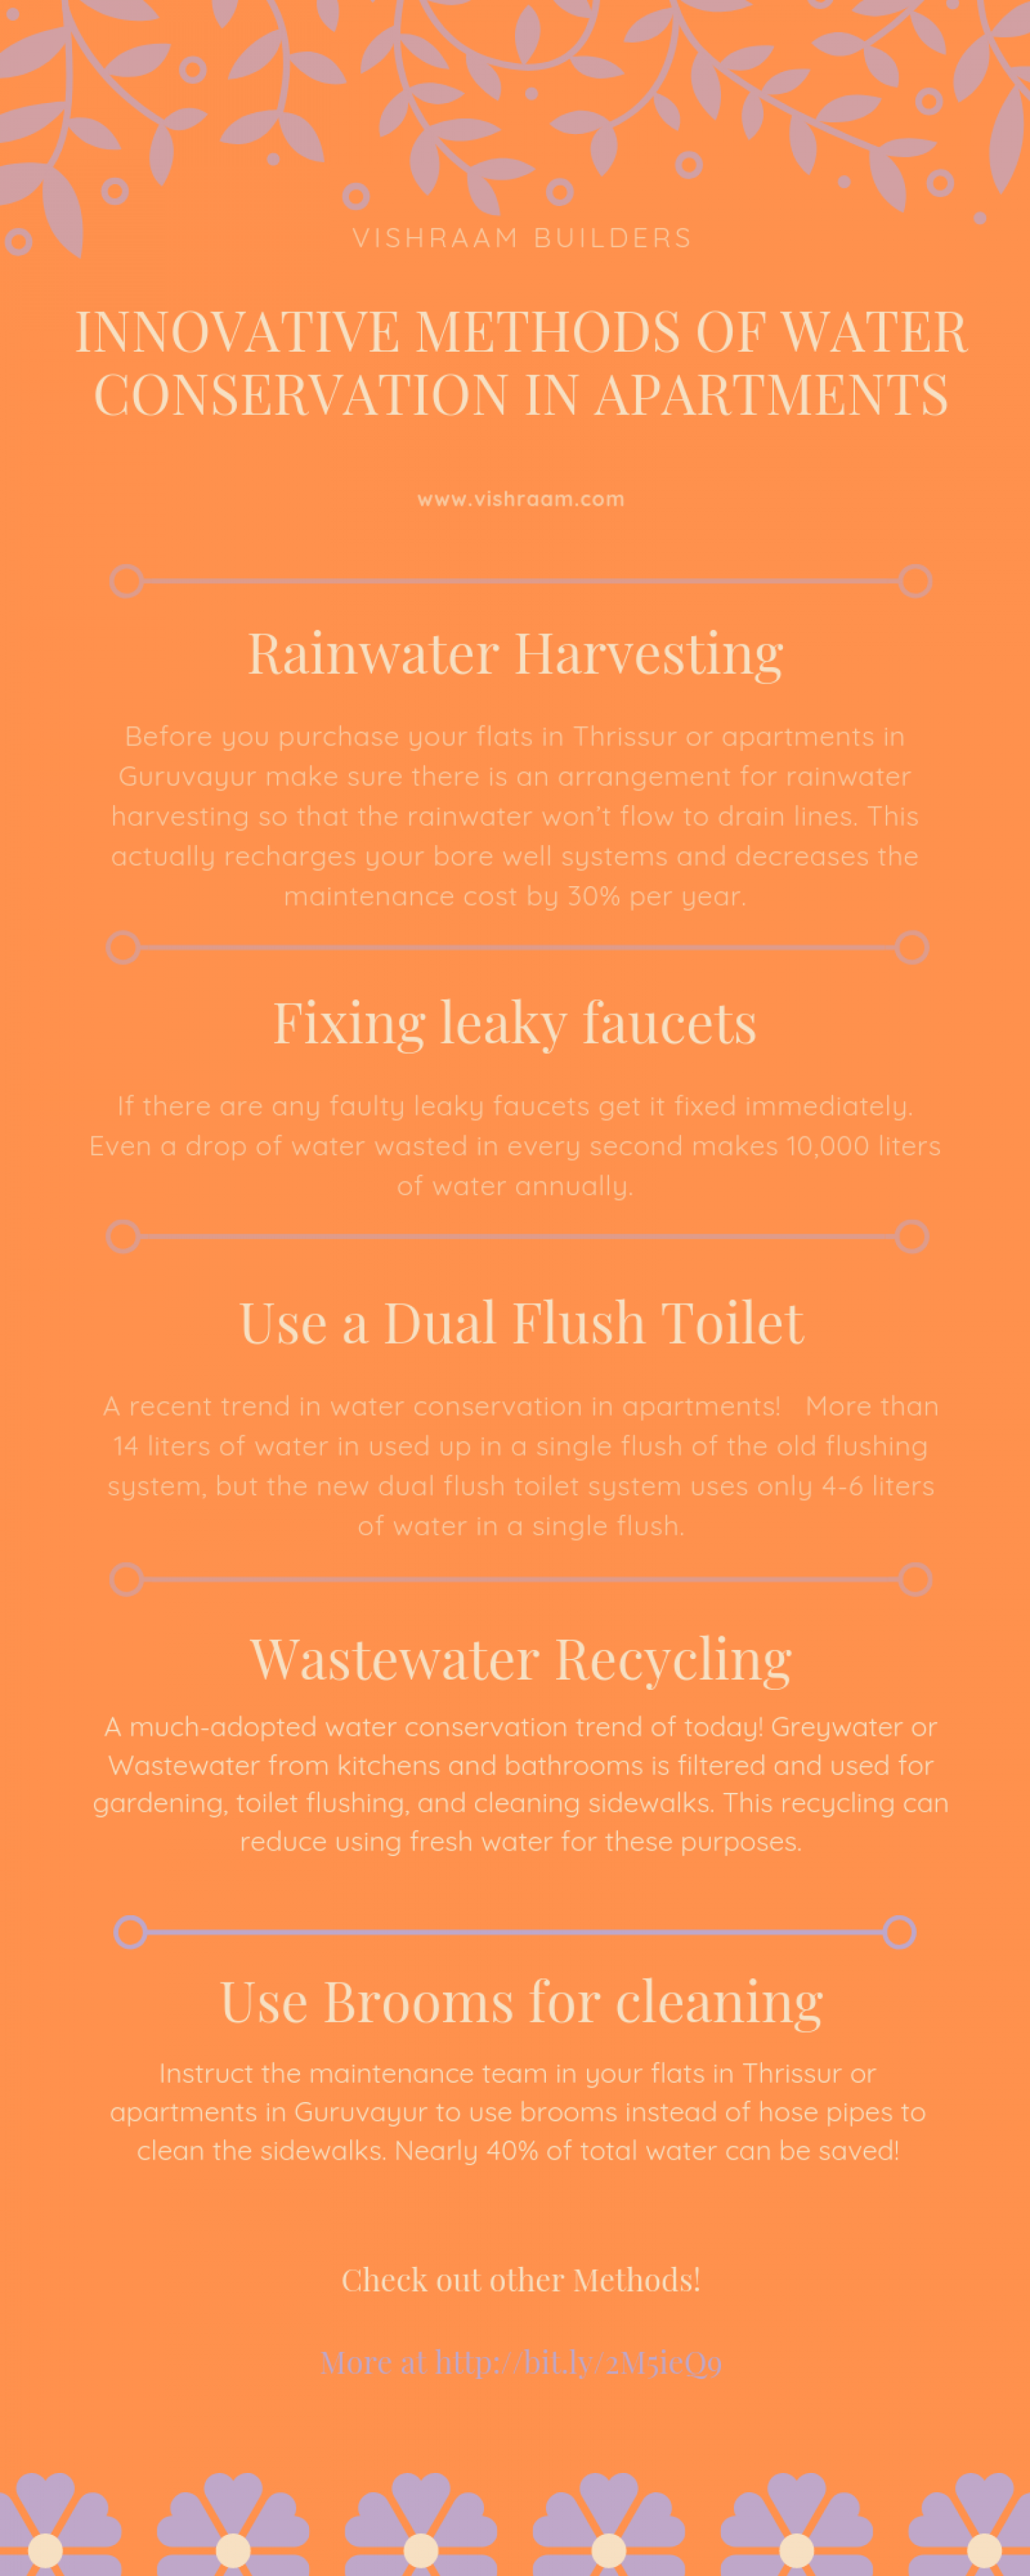 INNOVATIVE METHODS OF WATER CONSERVATION IN APARTMENTS Infographic